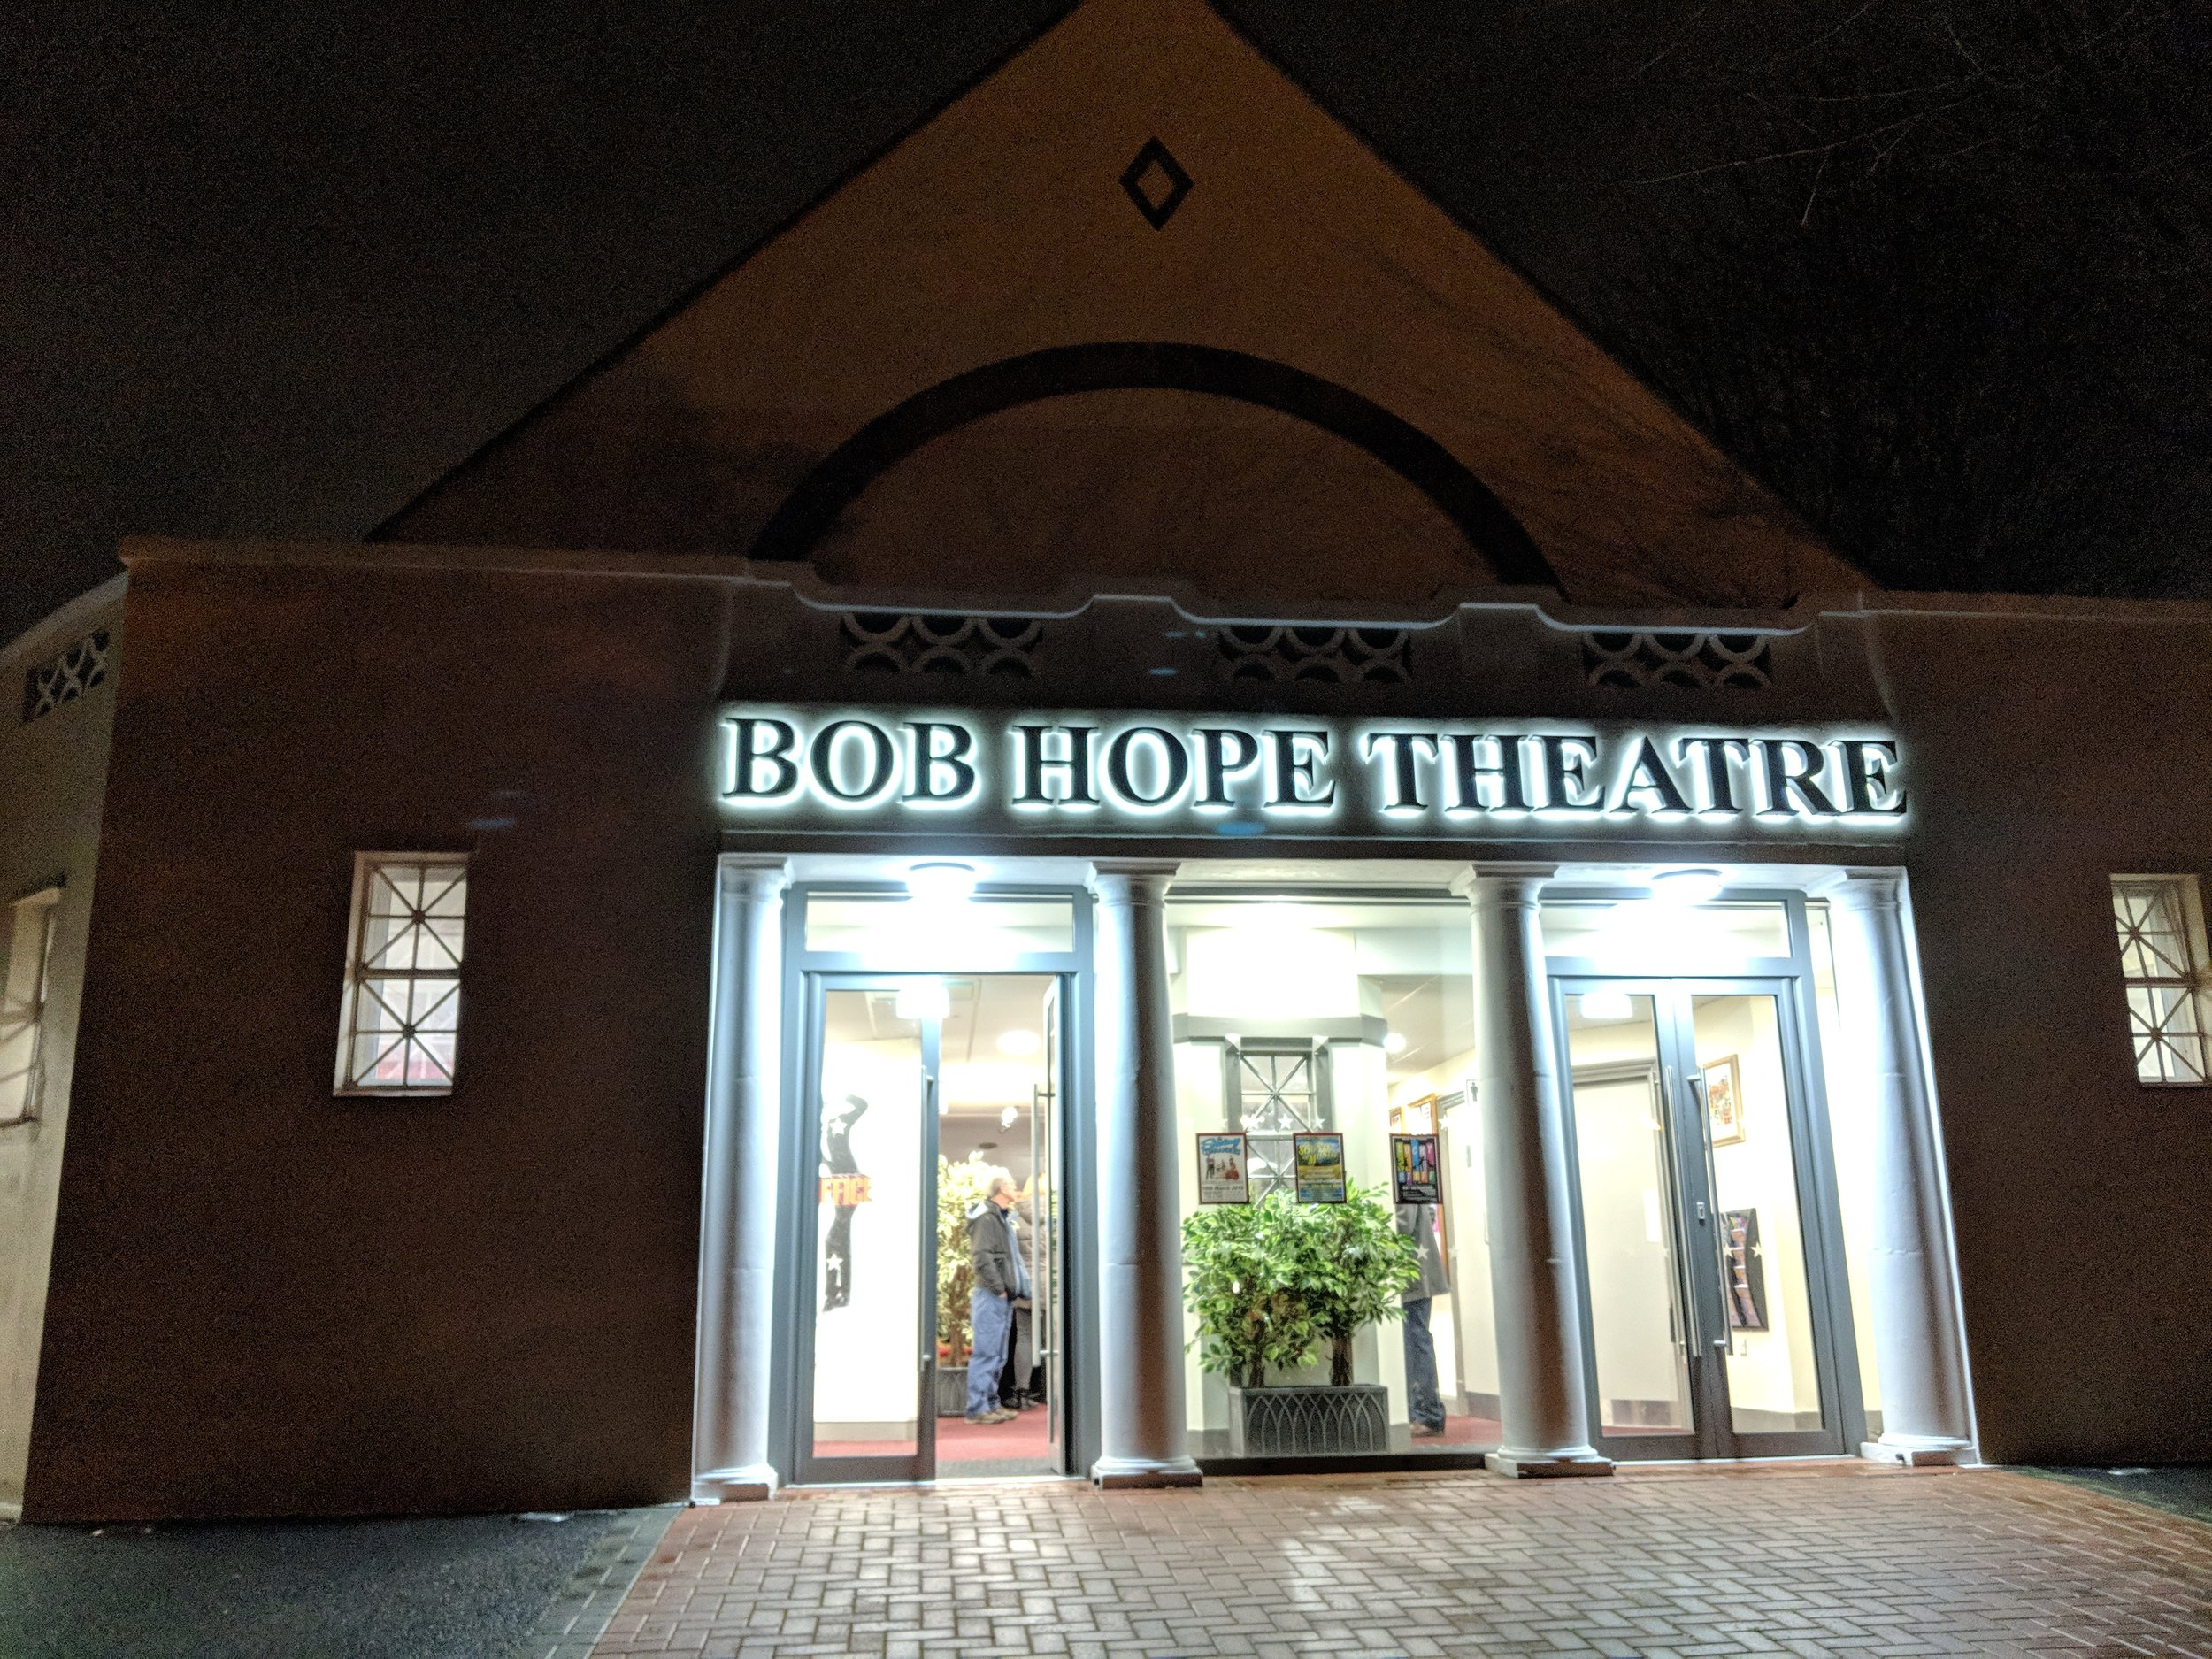 The Bob Hope Theatre - visited 07/03/2019